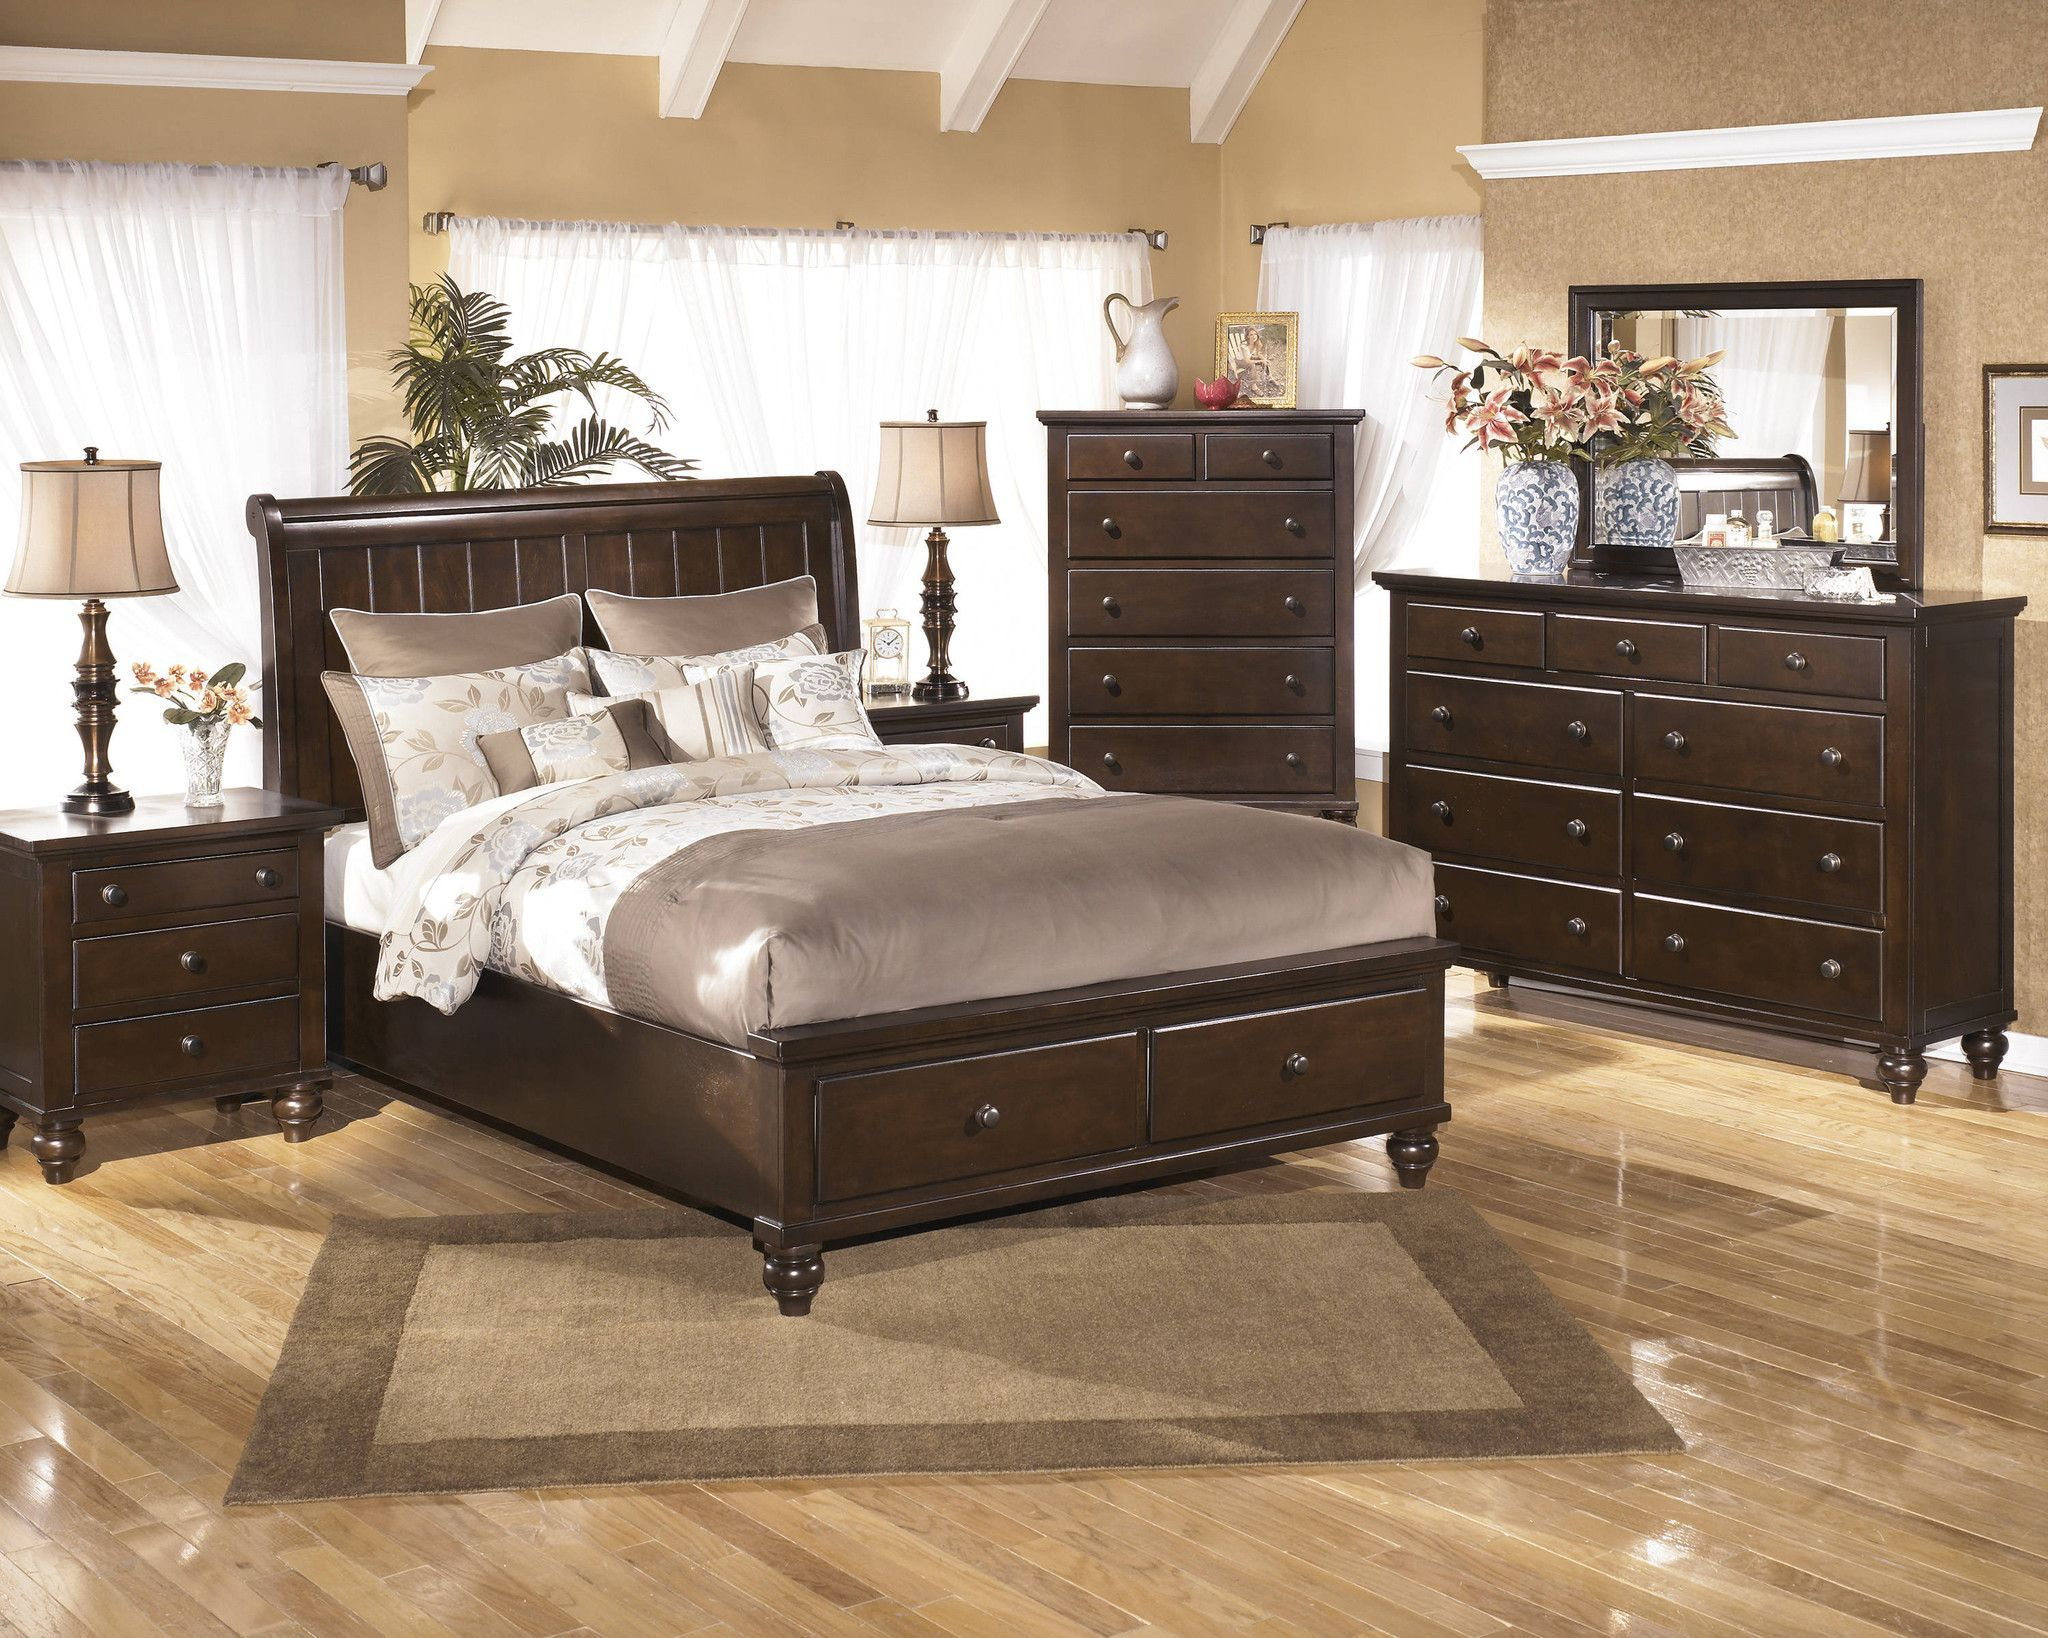 Image of: Ashley Furniture Bed With Storage at Target